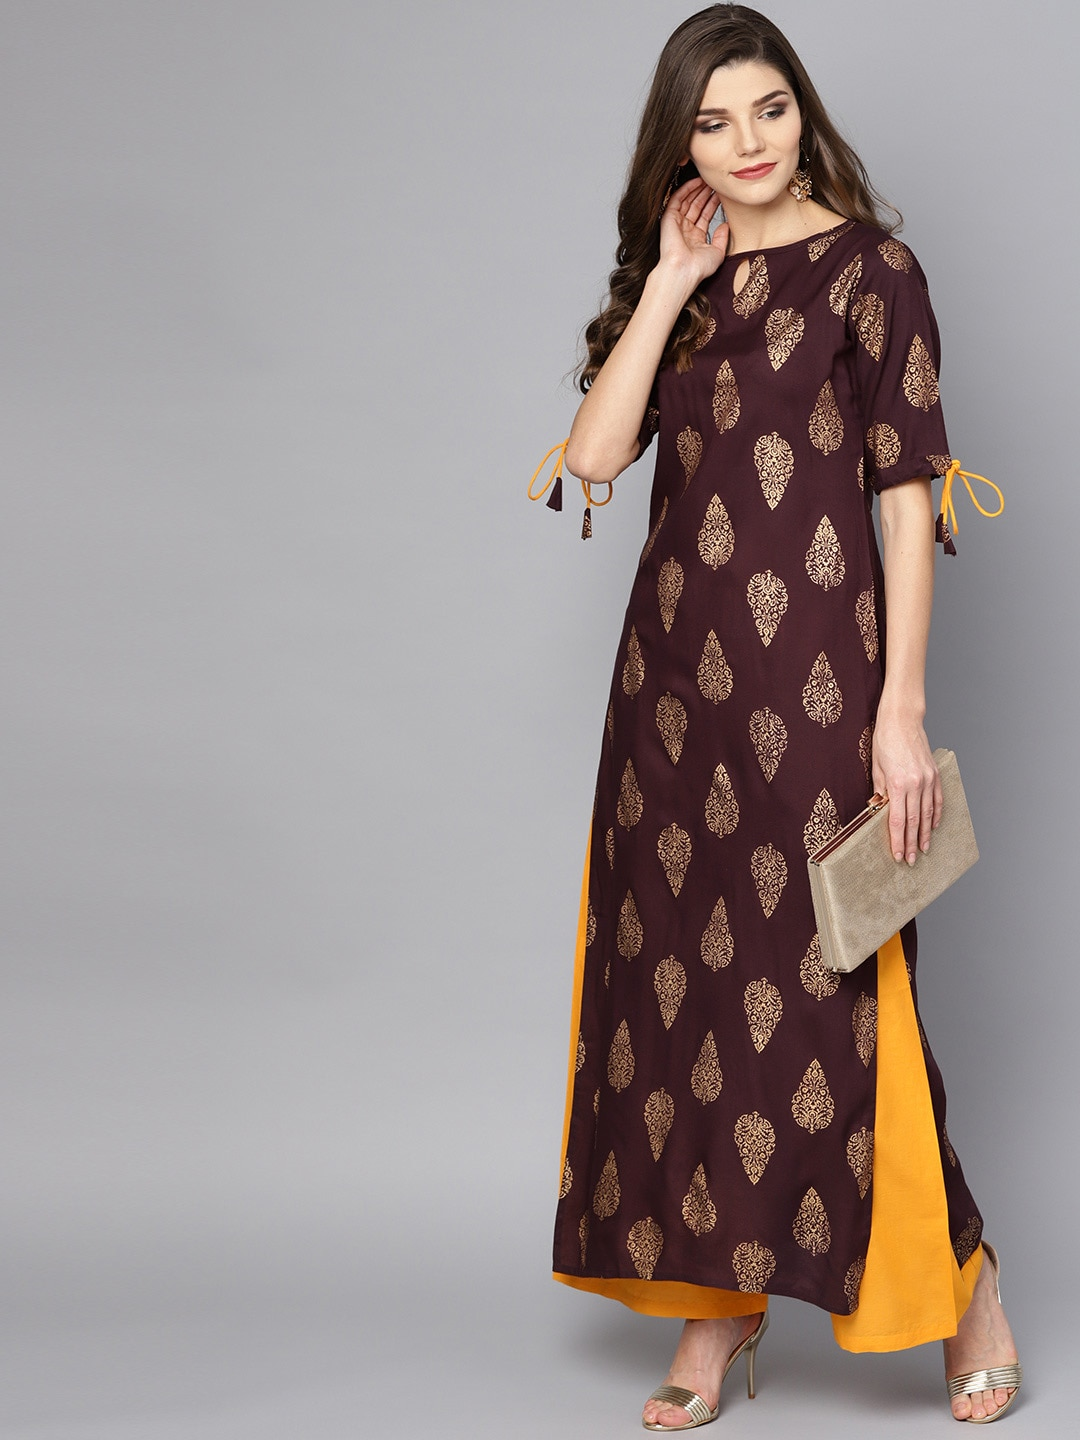 e69c4fdaf05 Ethnic Wear - Buy Ethnic Wear for Men   Women Online